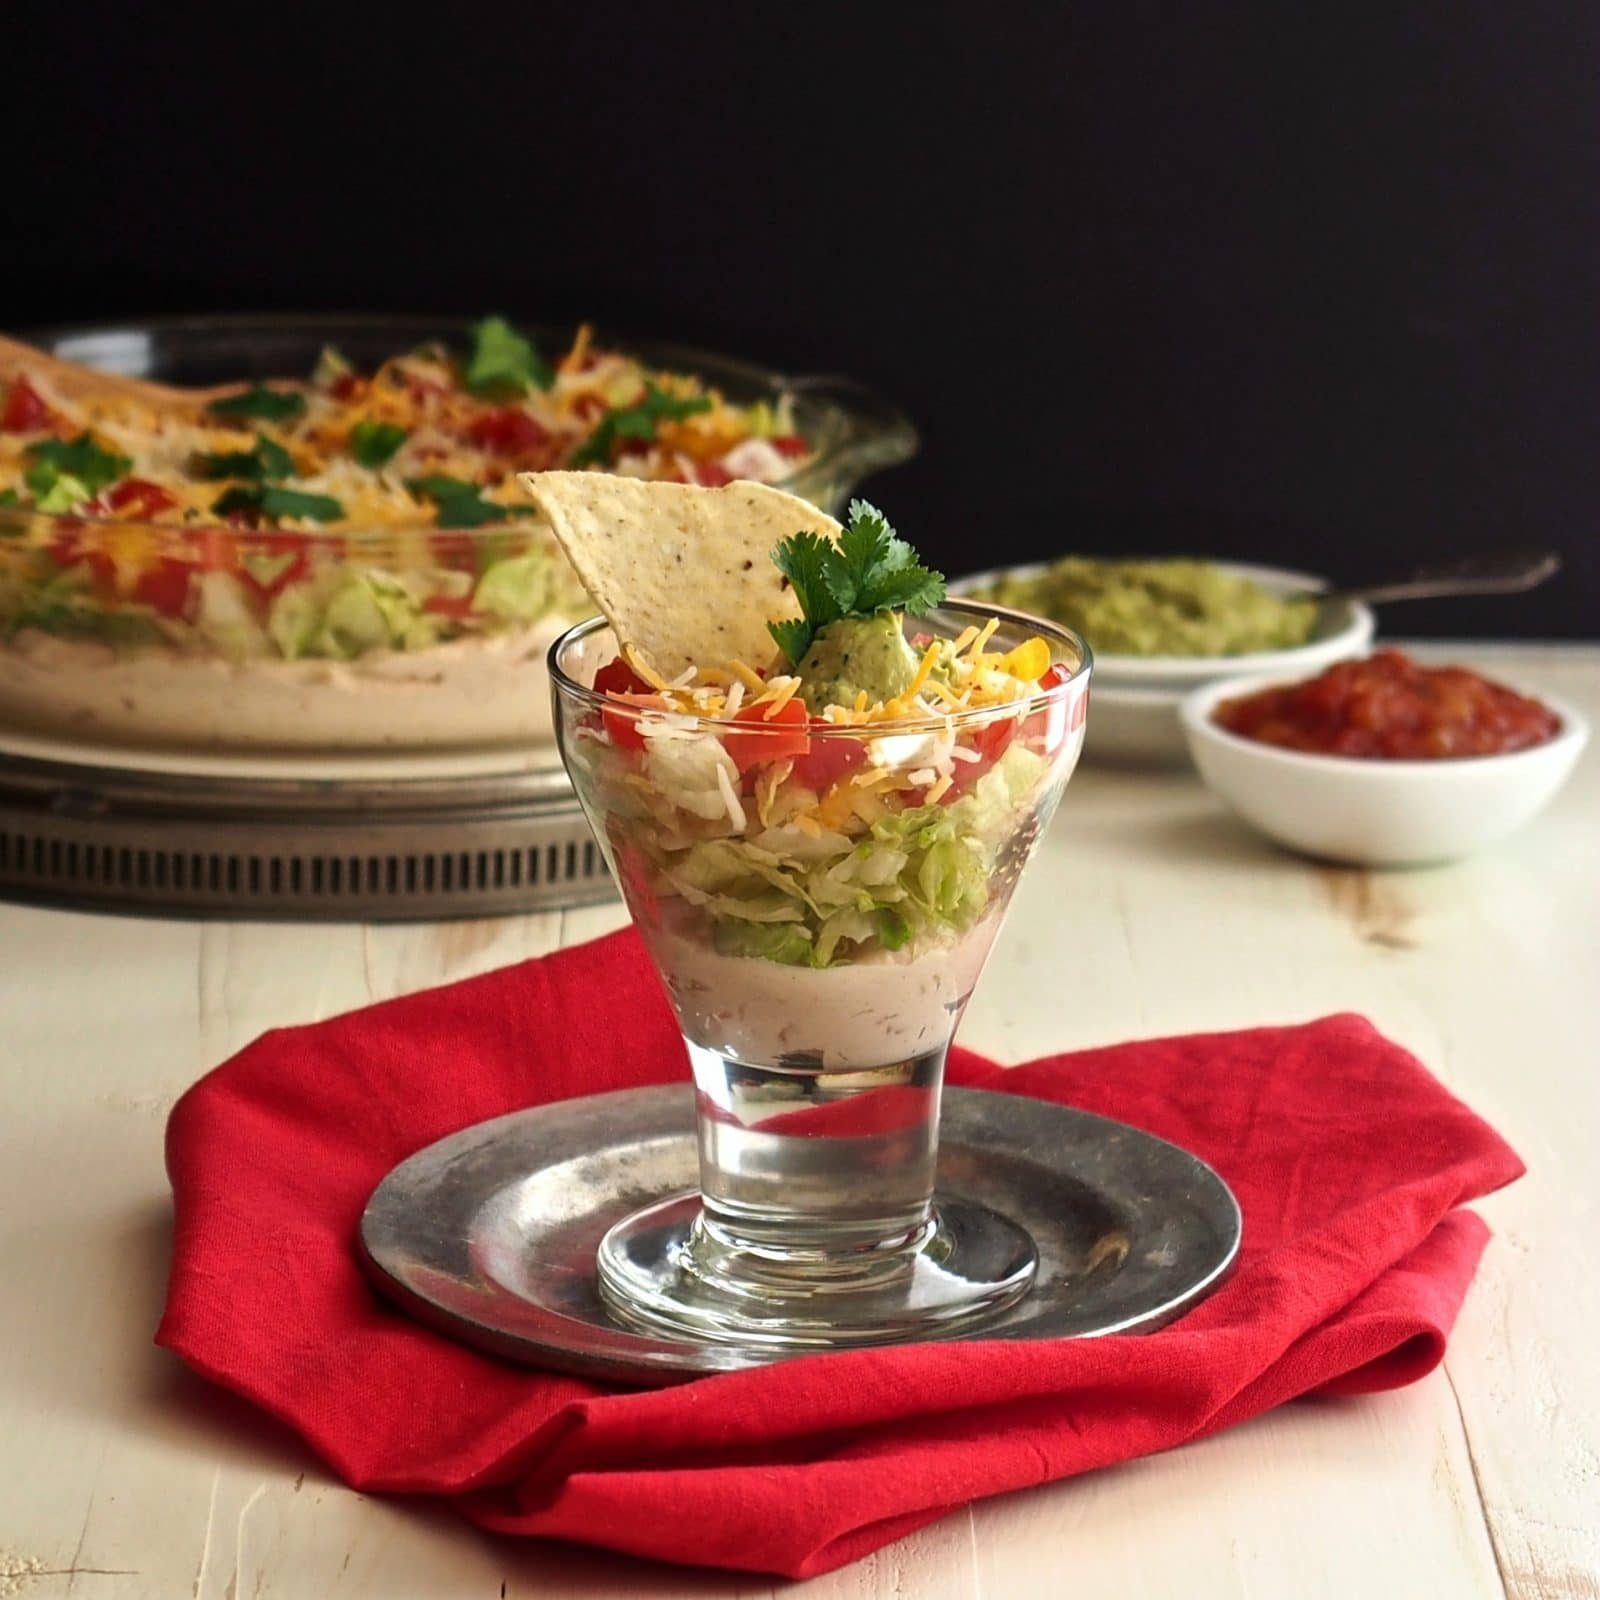 Layered Mexican Dip is as cozy as a patchwork quilt. It is an all-time favorite in its simplest form. Cream cheese, salsa, cheese, lettuce & tomatoes. Simply Sated